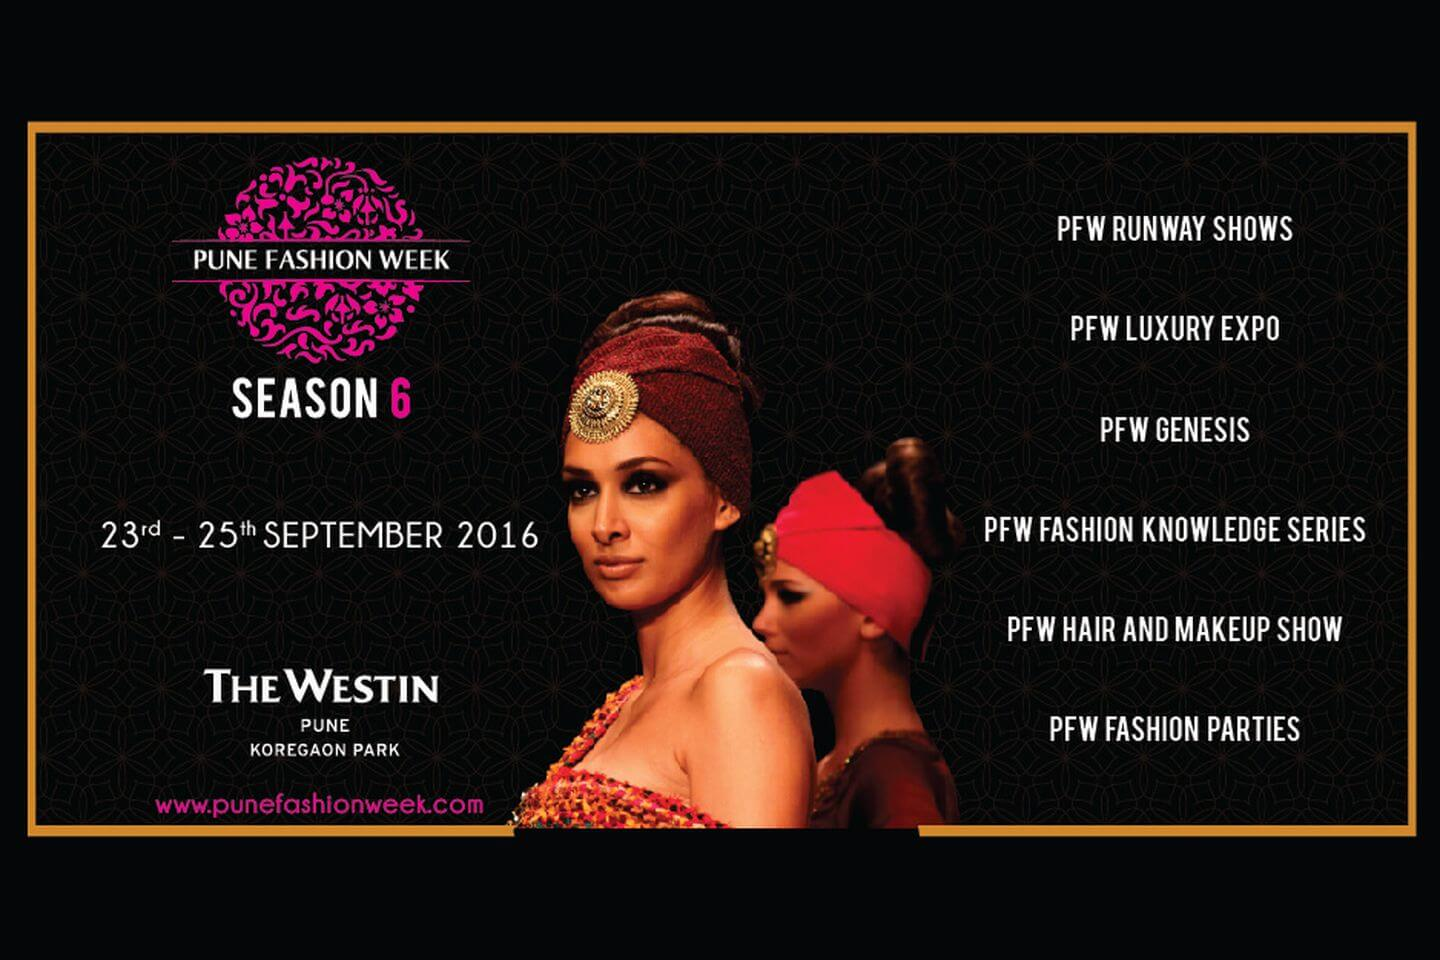 Pune Fashion Week 2016